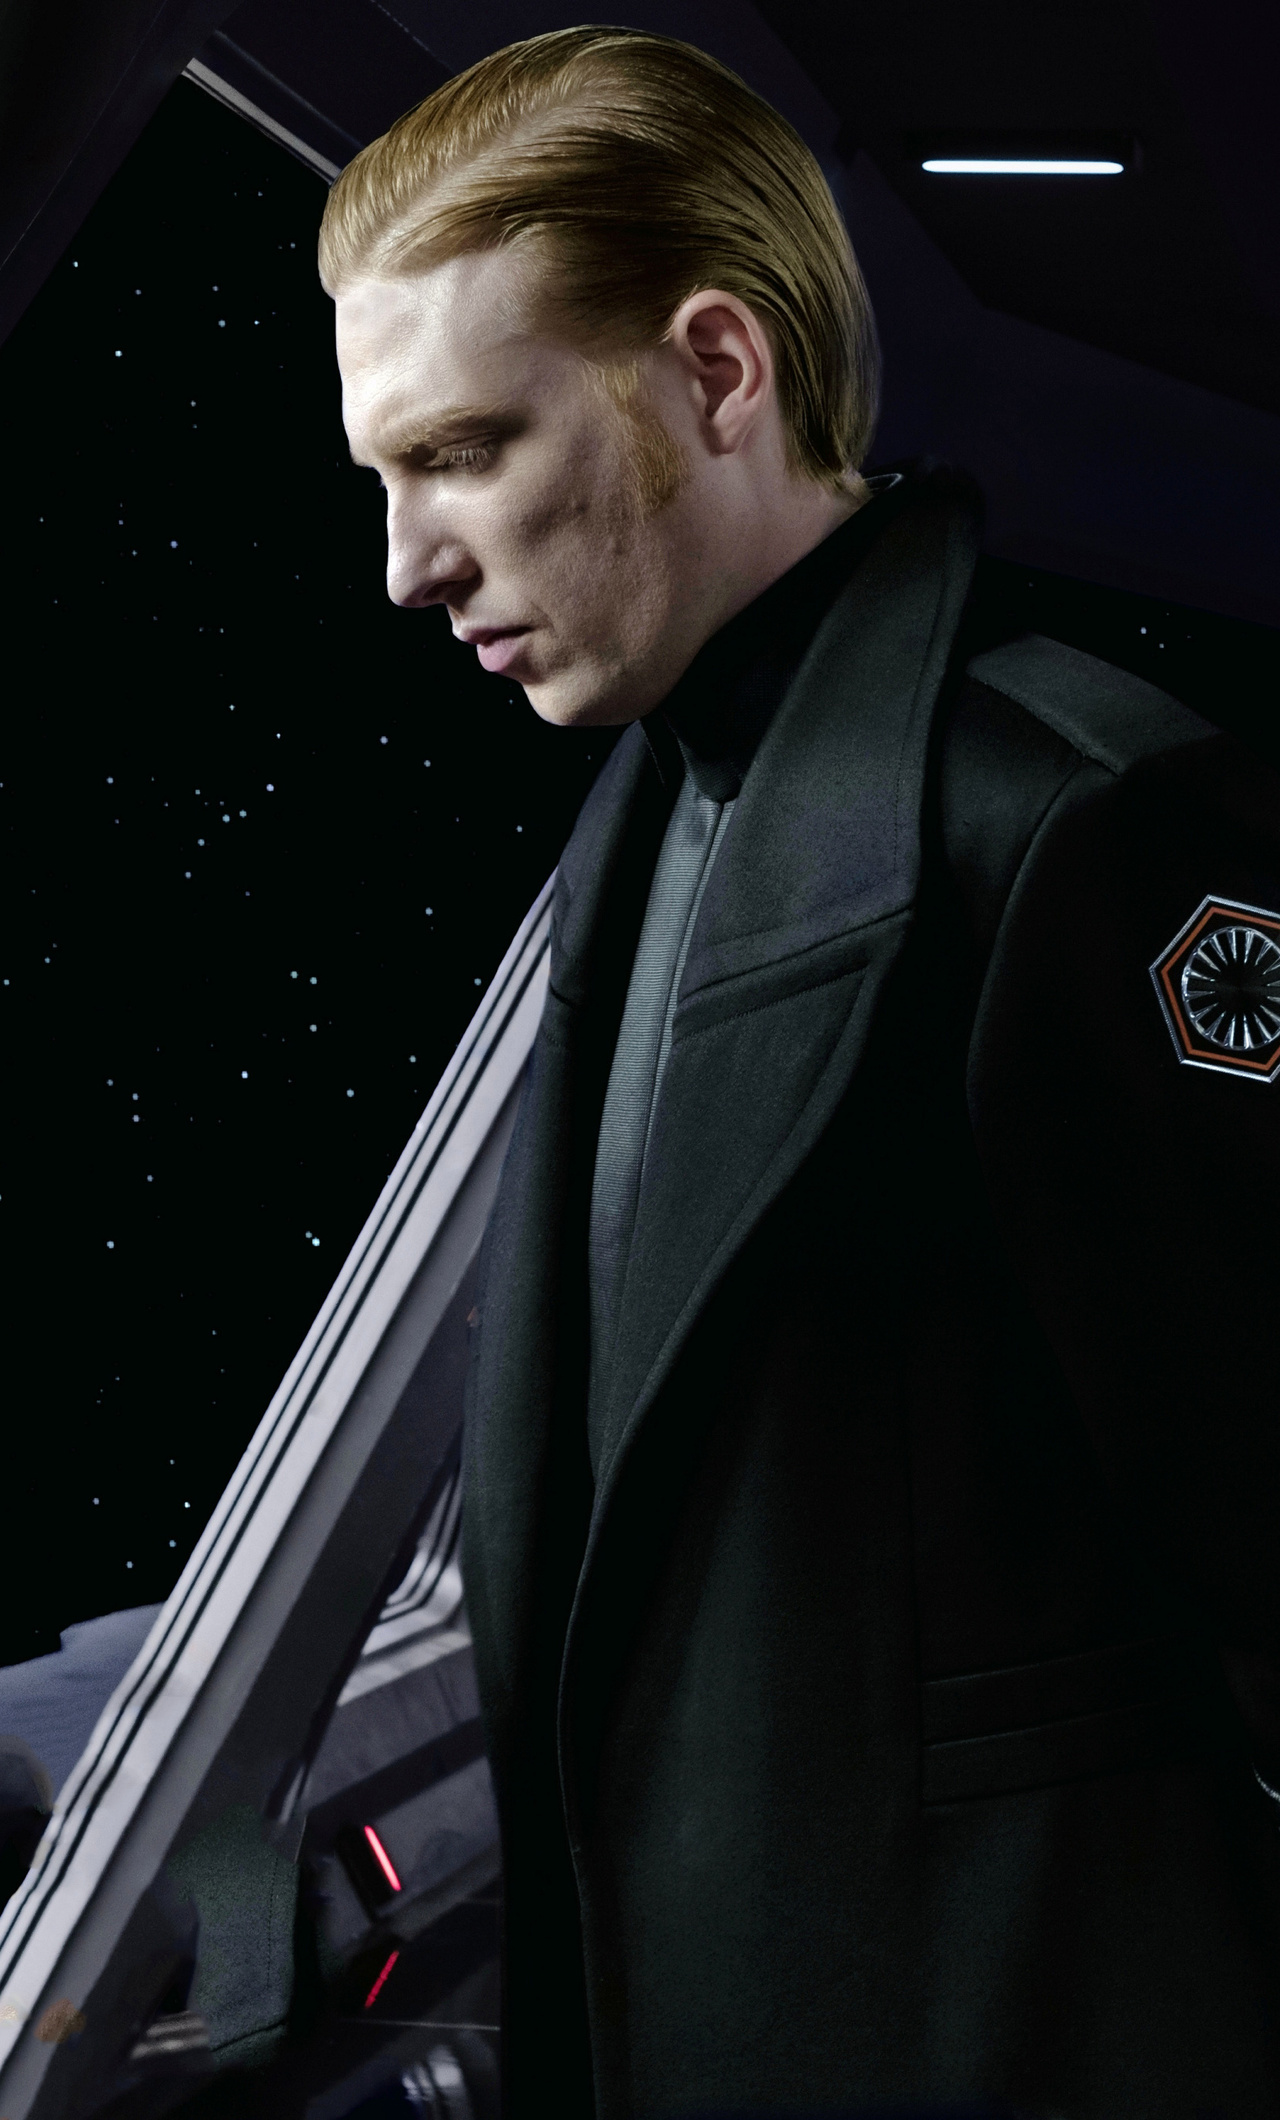 general hux iphone